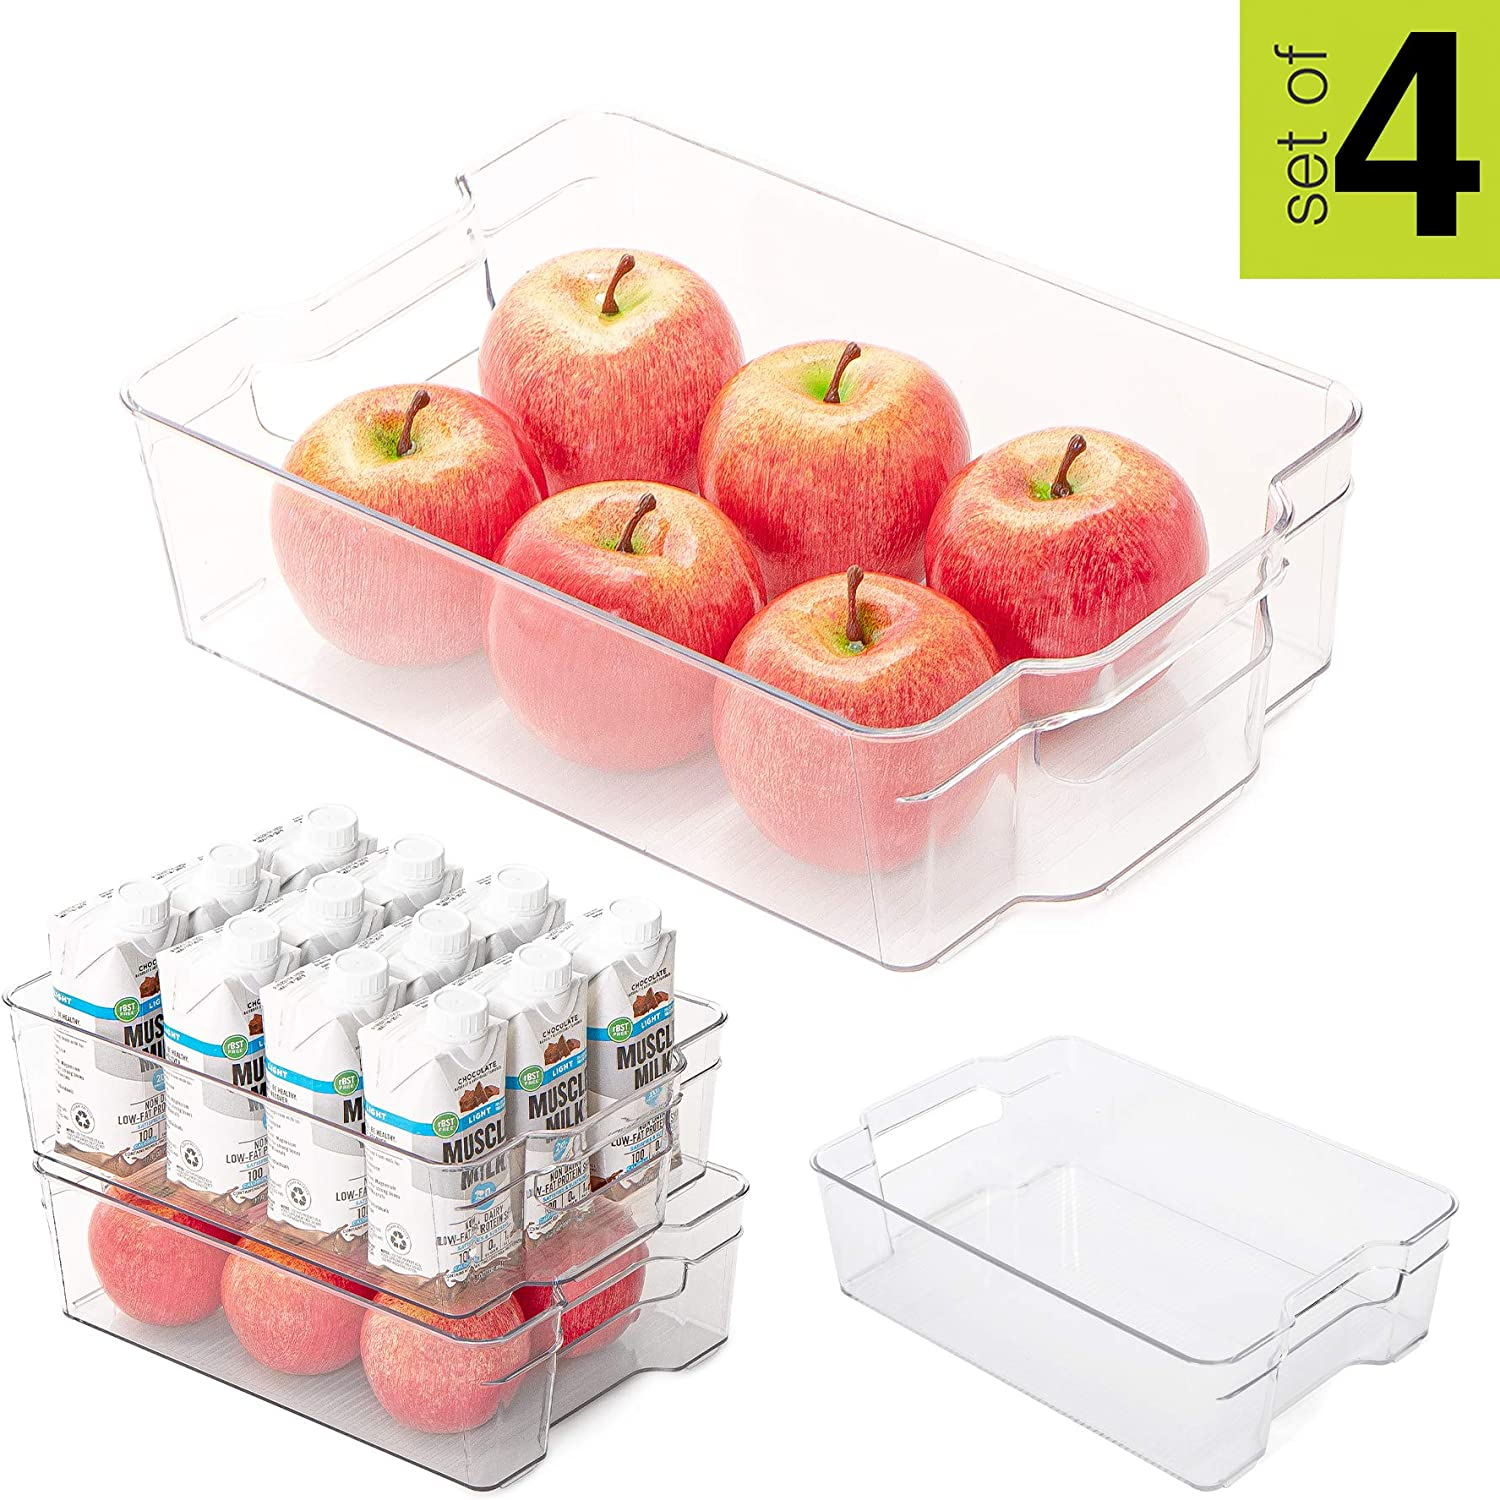 Smart Design Stackable Refrigerator Bin - (8 x 12 Inch) - w/Handle - BPA Free Polyethylene - for Fridge, Freezer, Pantry Organization - Kitchen [Clear] - Set of 4